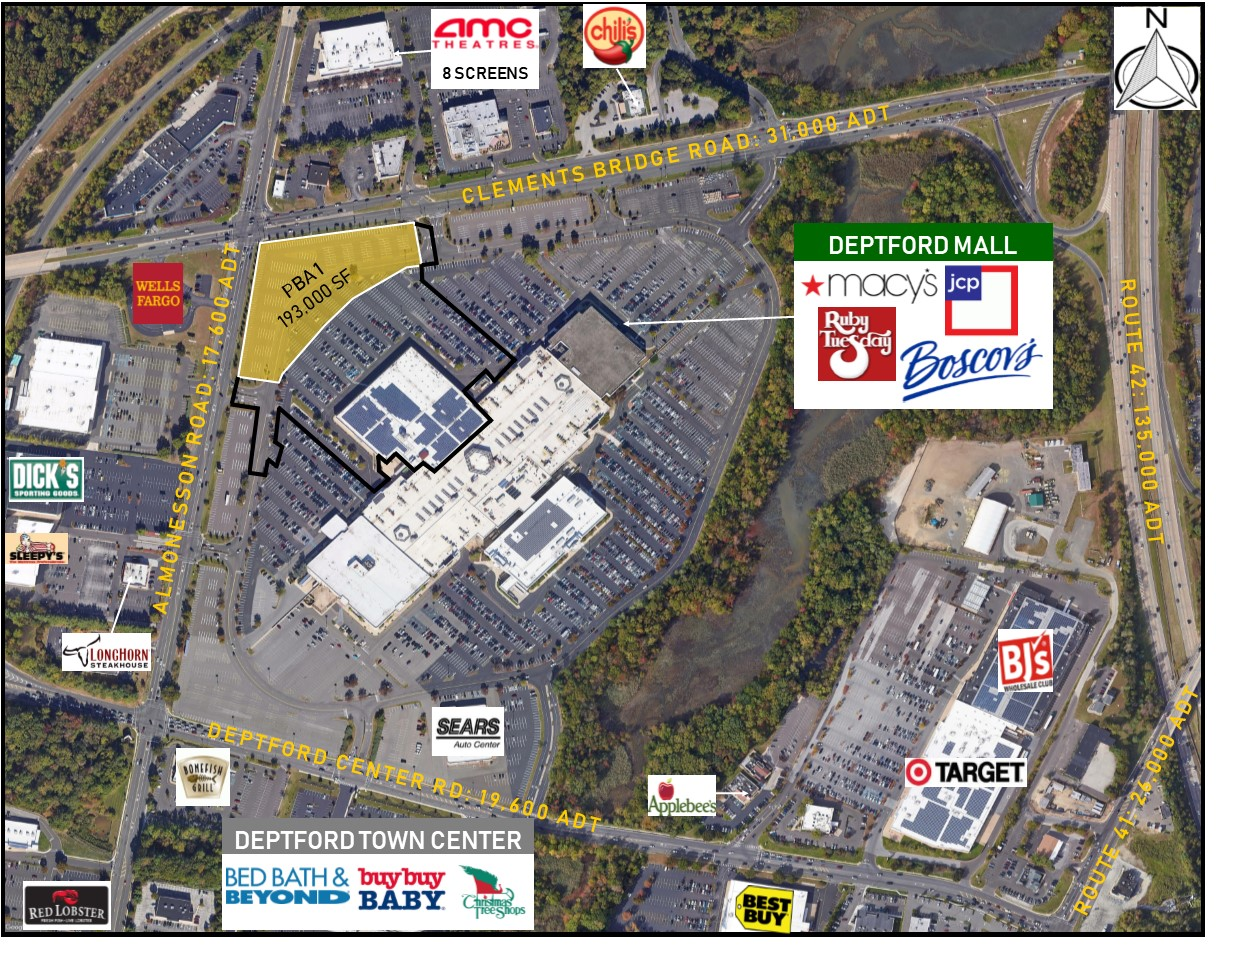 Deptford Mall – CRA on east brunswick mall map, west town mall map, mesa mall map, alderwood mall directory map, meadowbrook mall map, west county mall map, granite run mall map, ledgewood mall map, moorestown mall map, green tree mall map, mall of louisiana map, voorhees mall map, monmouth mall map, south plains mall directory map, fairgrounds square mall map, annapolis mall store directory map, london mall map, lodi mall map, newark mall map, bloomfield mall map,